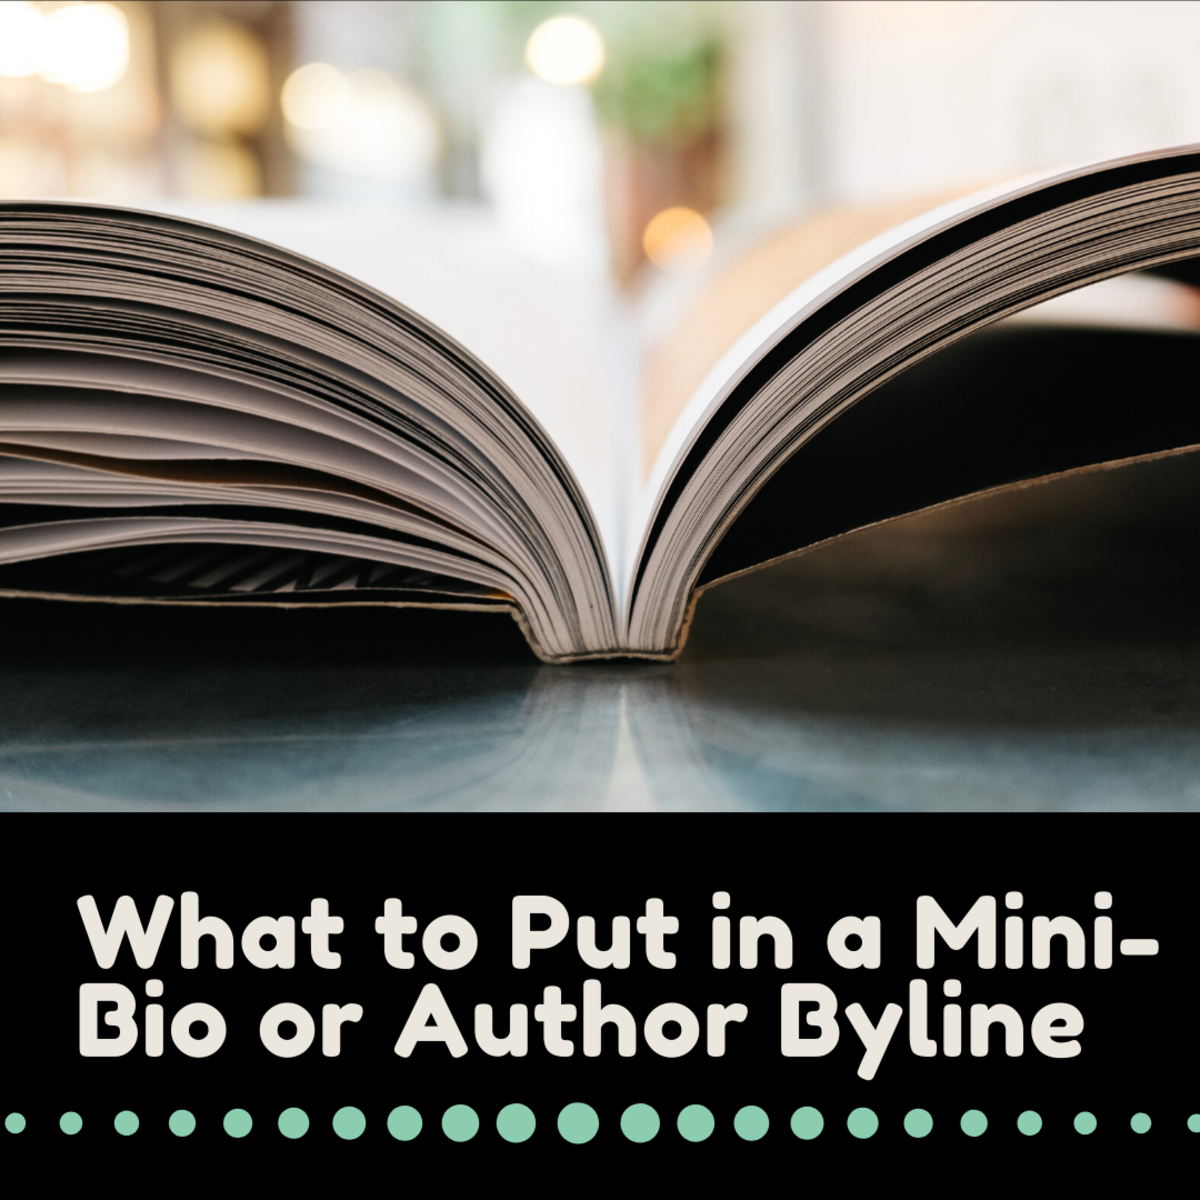 Read on to learn how to write a mini-biographical note that sounds professional, yet approachable.